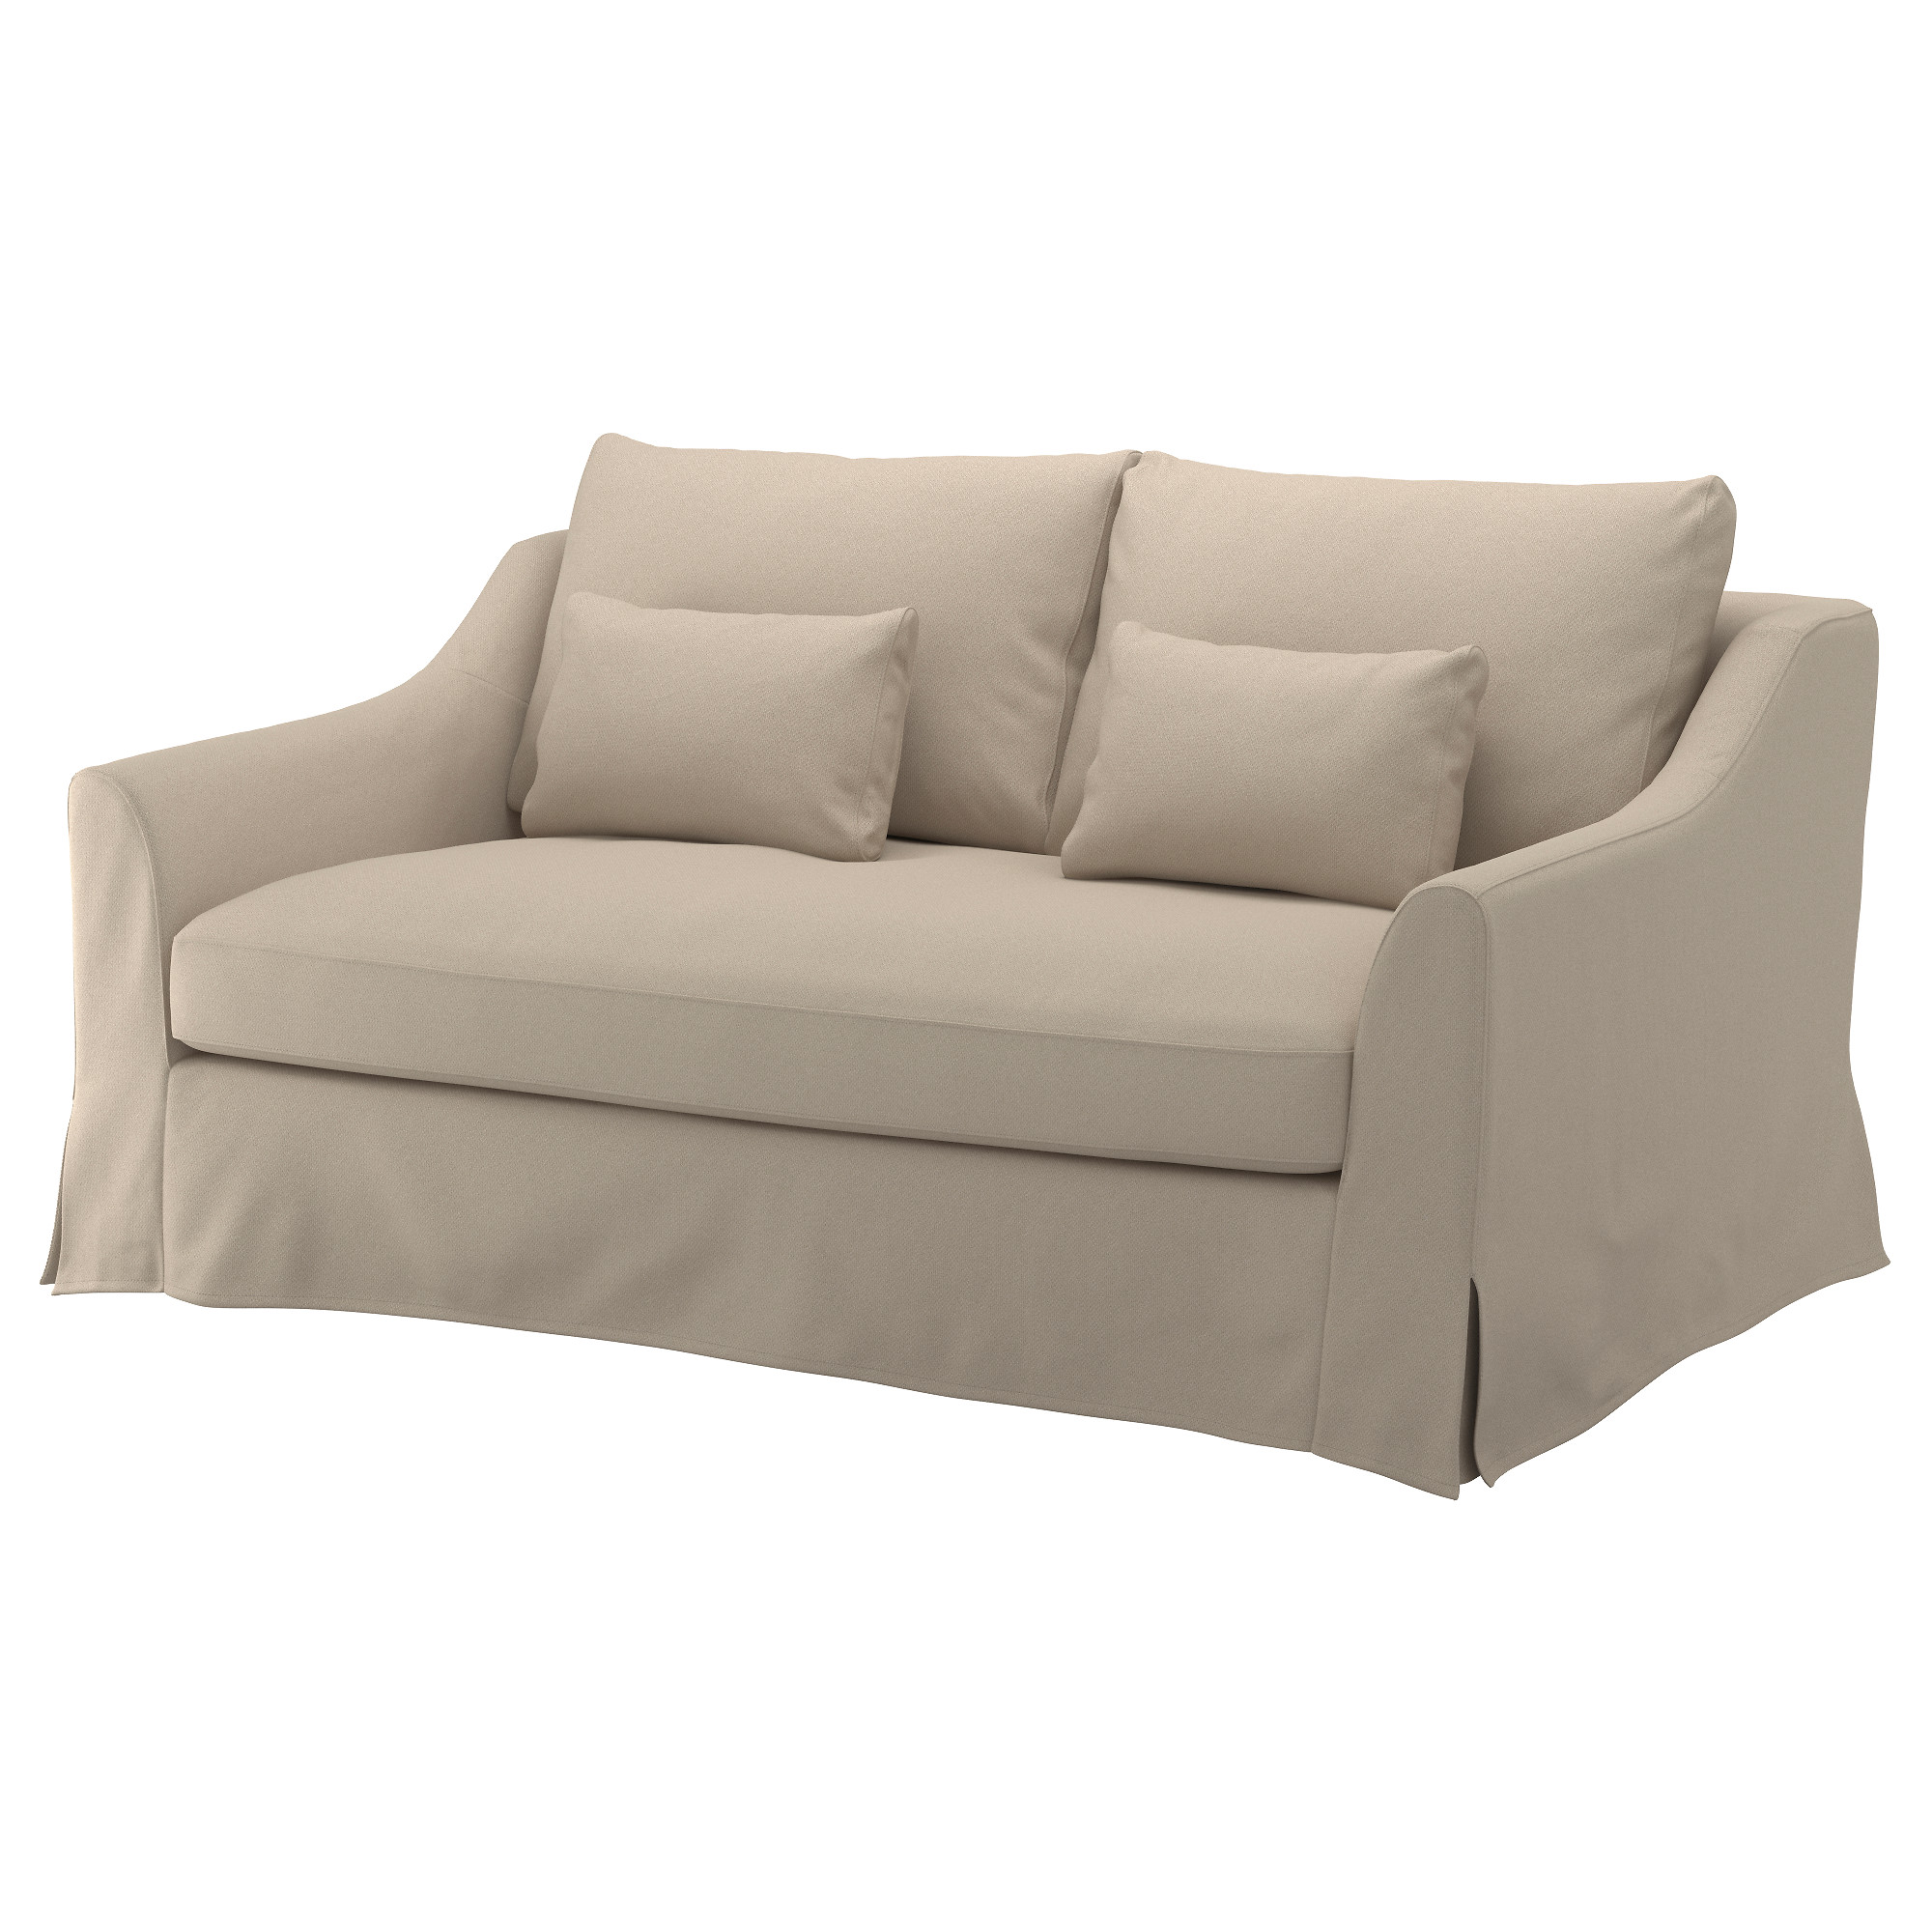 Coole Dekoration Ikea Sofa Bett #23: Beautiful Frlv Ersofa Flodafors Beige Beige Jetzt Bestellen Unter Https  With 2er Sofa. Excellent Couch Bett Ikea Dekoria Fire ...